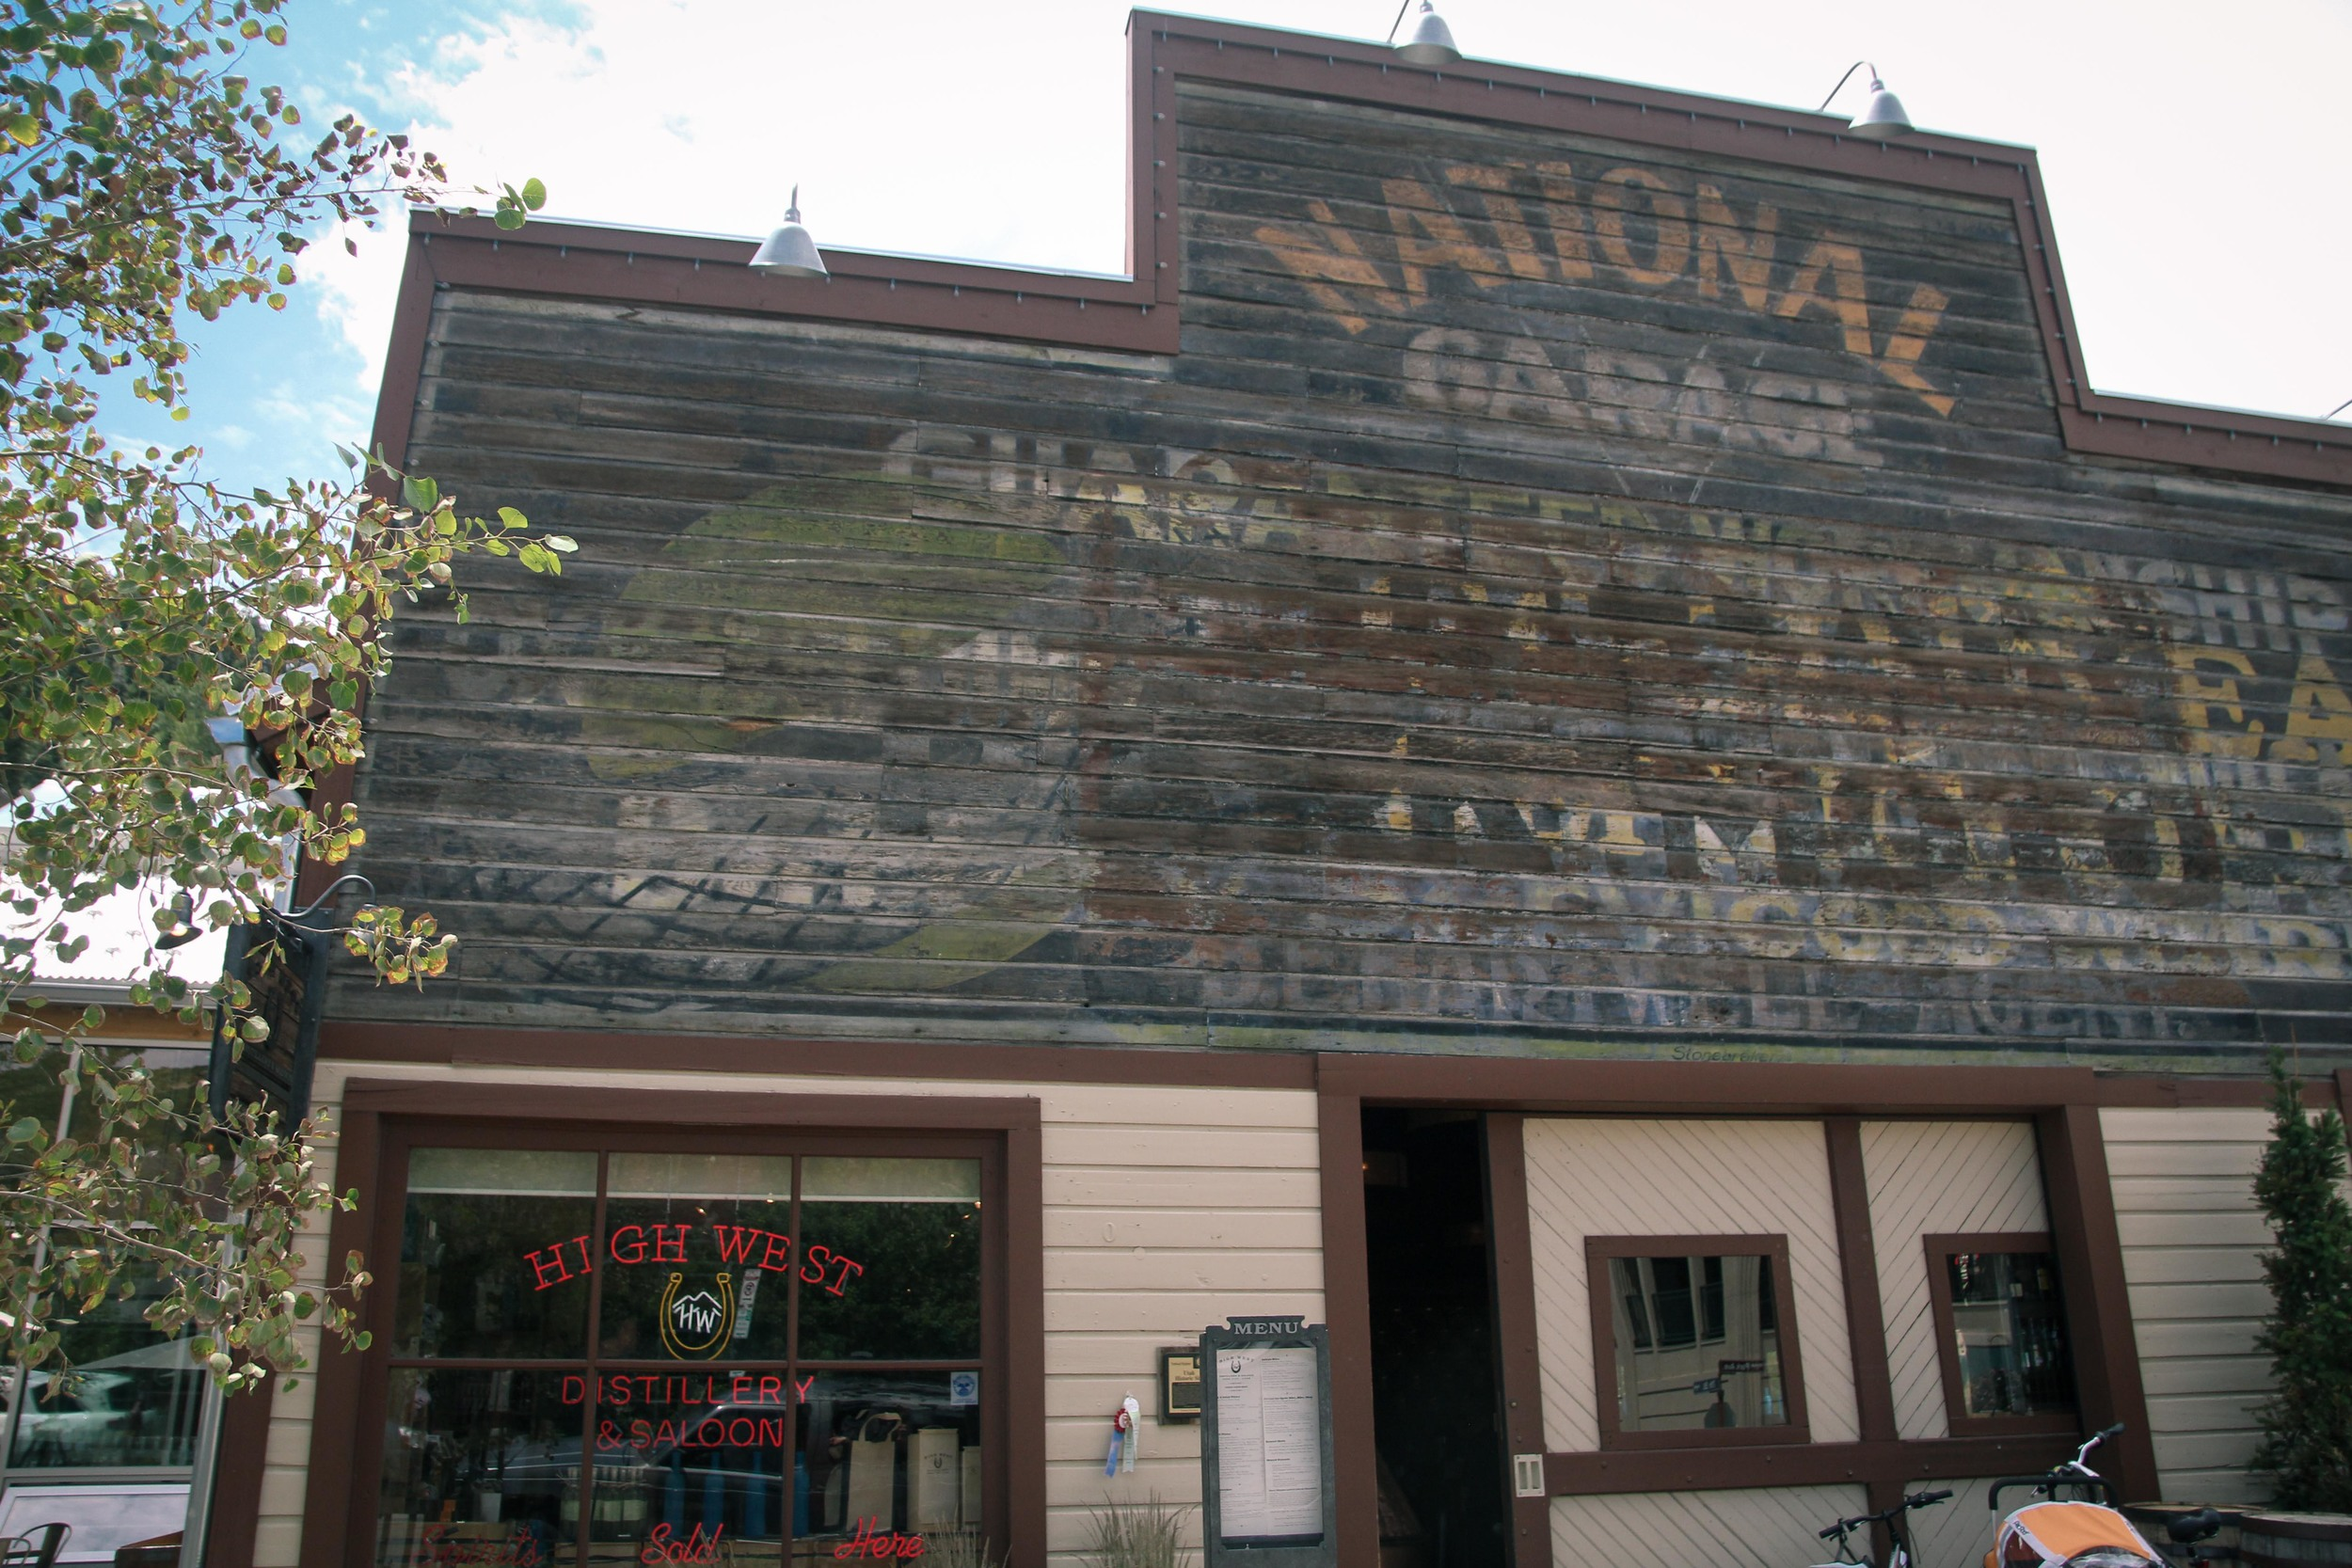 A fire across the street melted away the outer paint on this building, revealing historical layers of signage underneath.